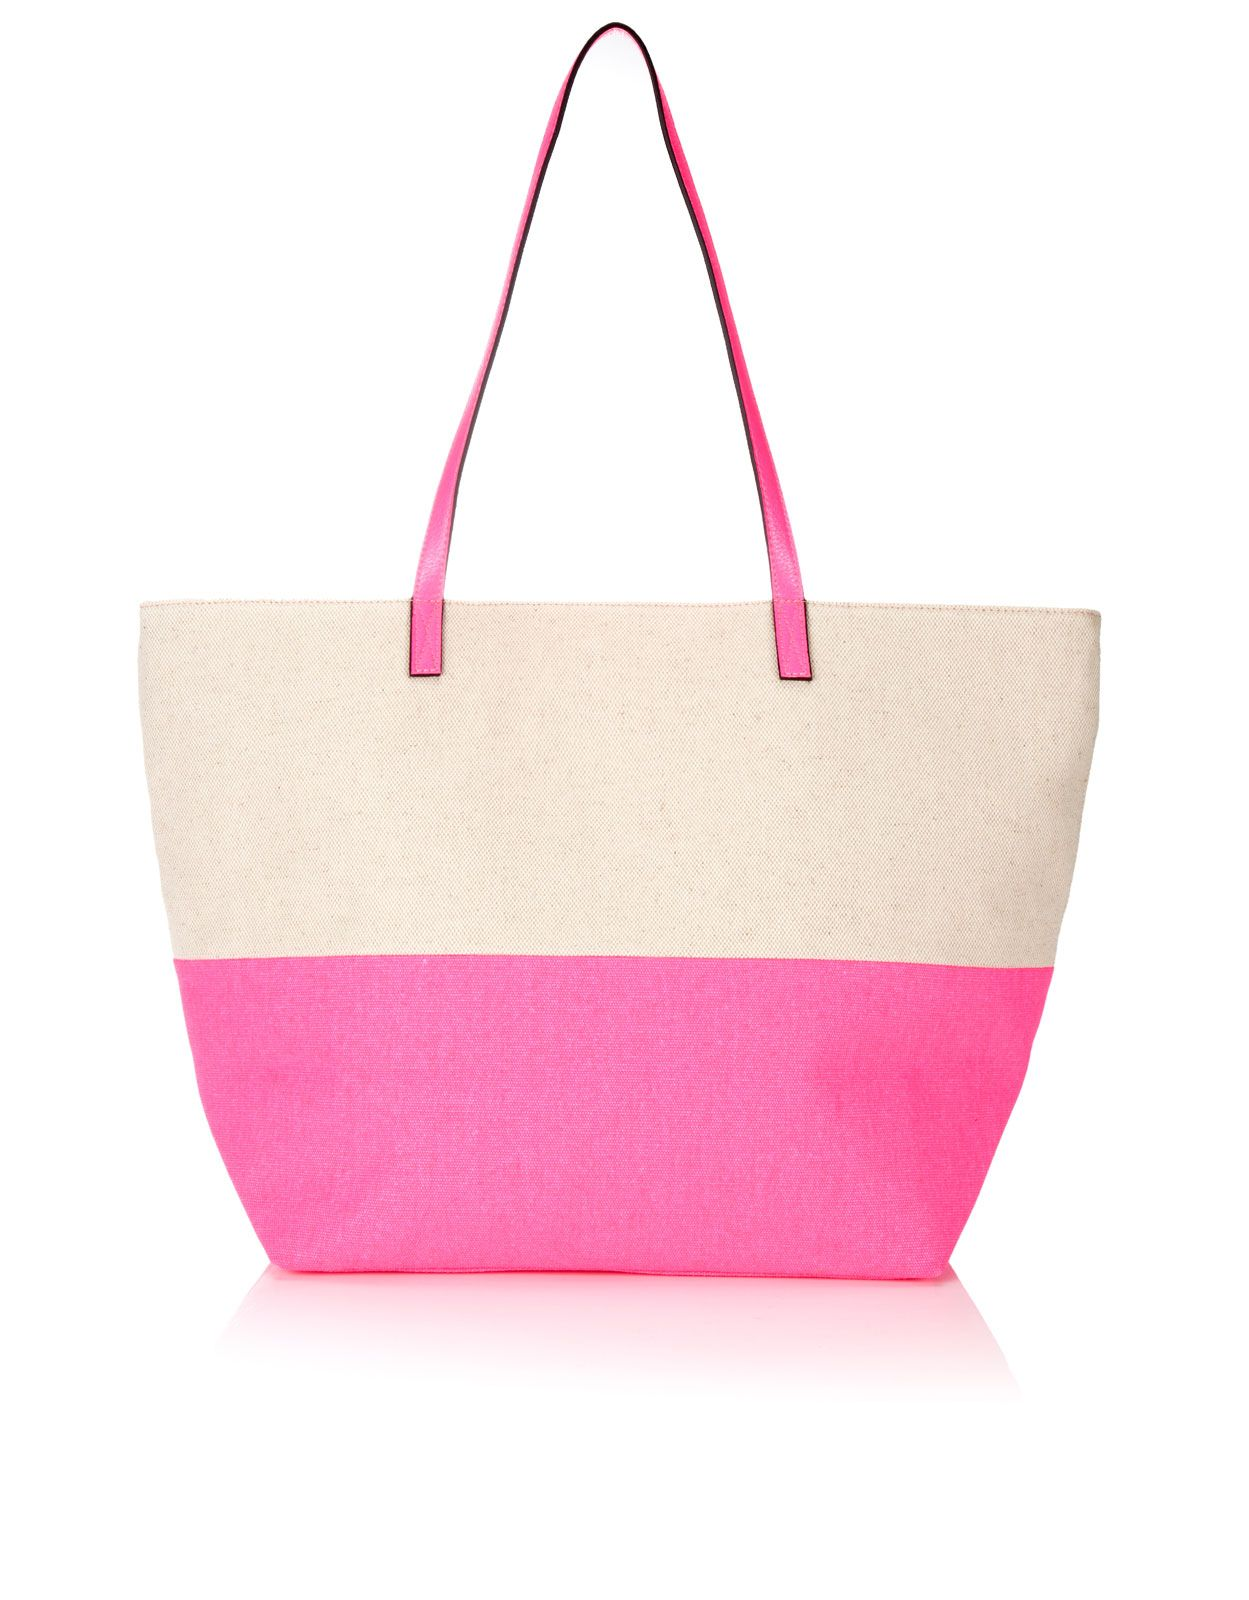 Honeymoon Neon Beach Tote Bag | Pink | Accessorize | Beach Wedding ...